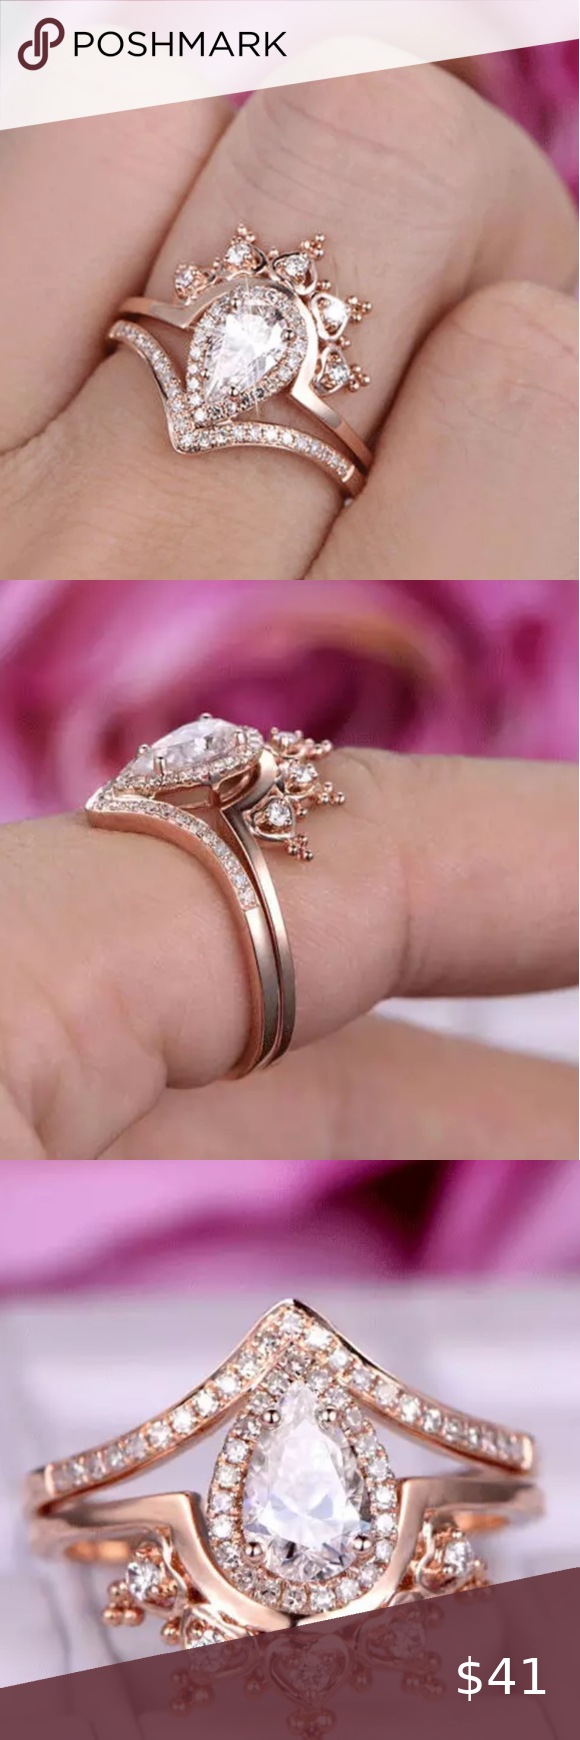 Rose gold pear halo crown ring diamond wedding set nwt in